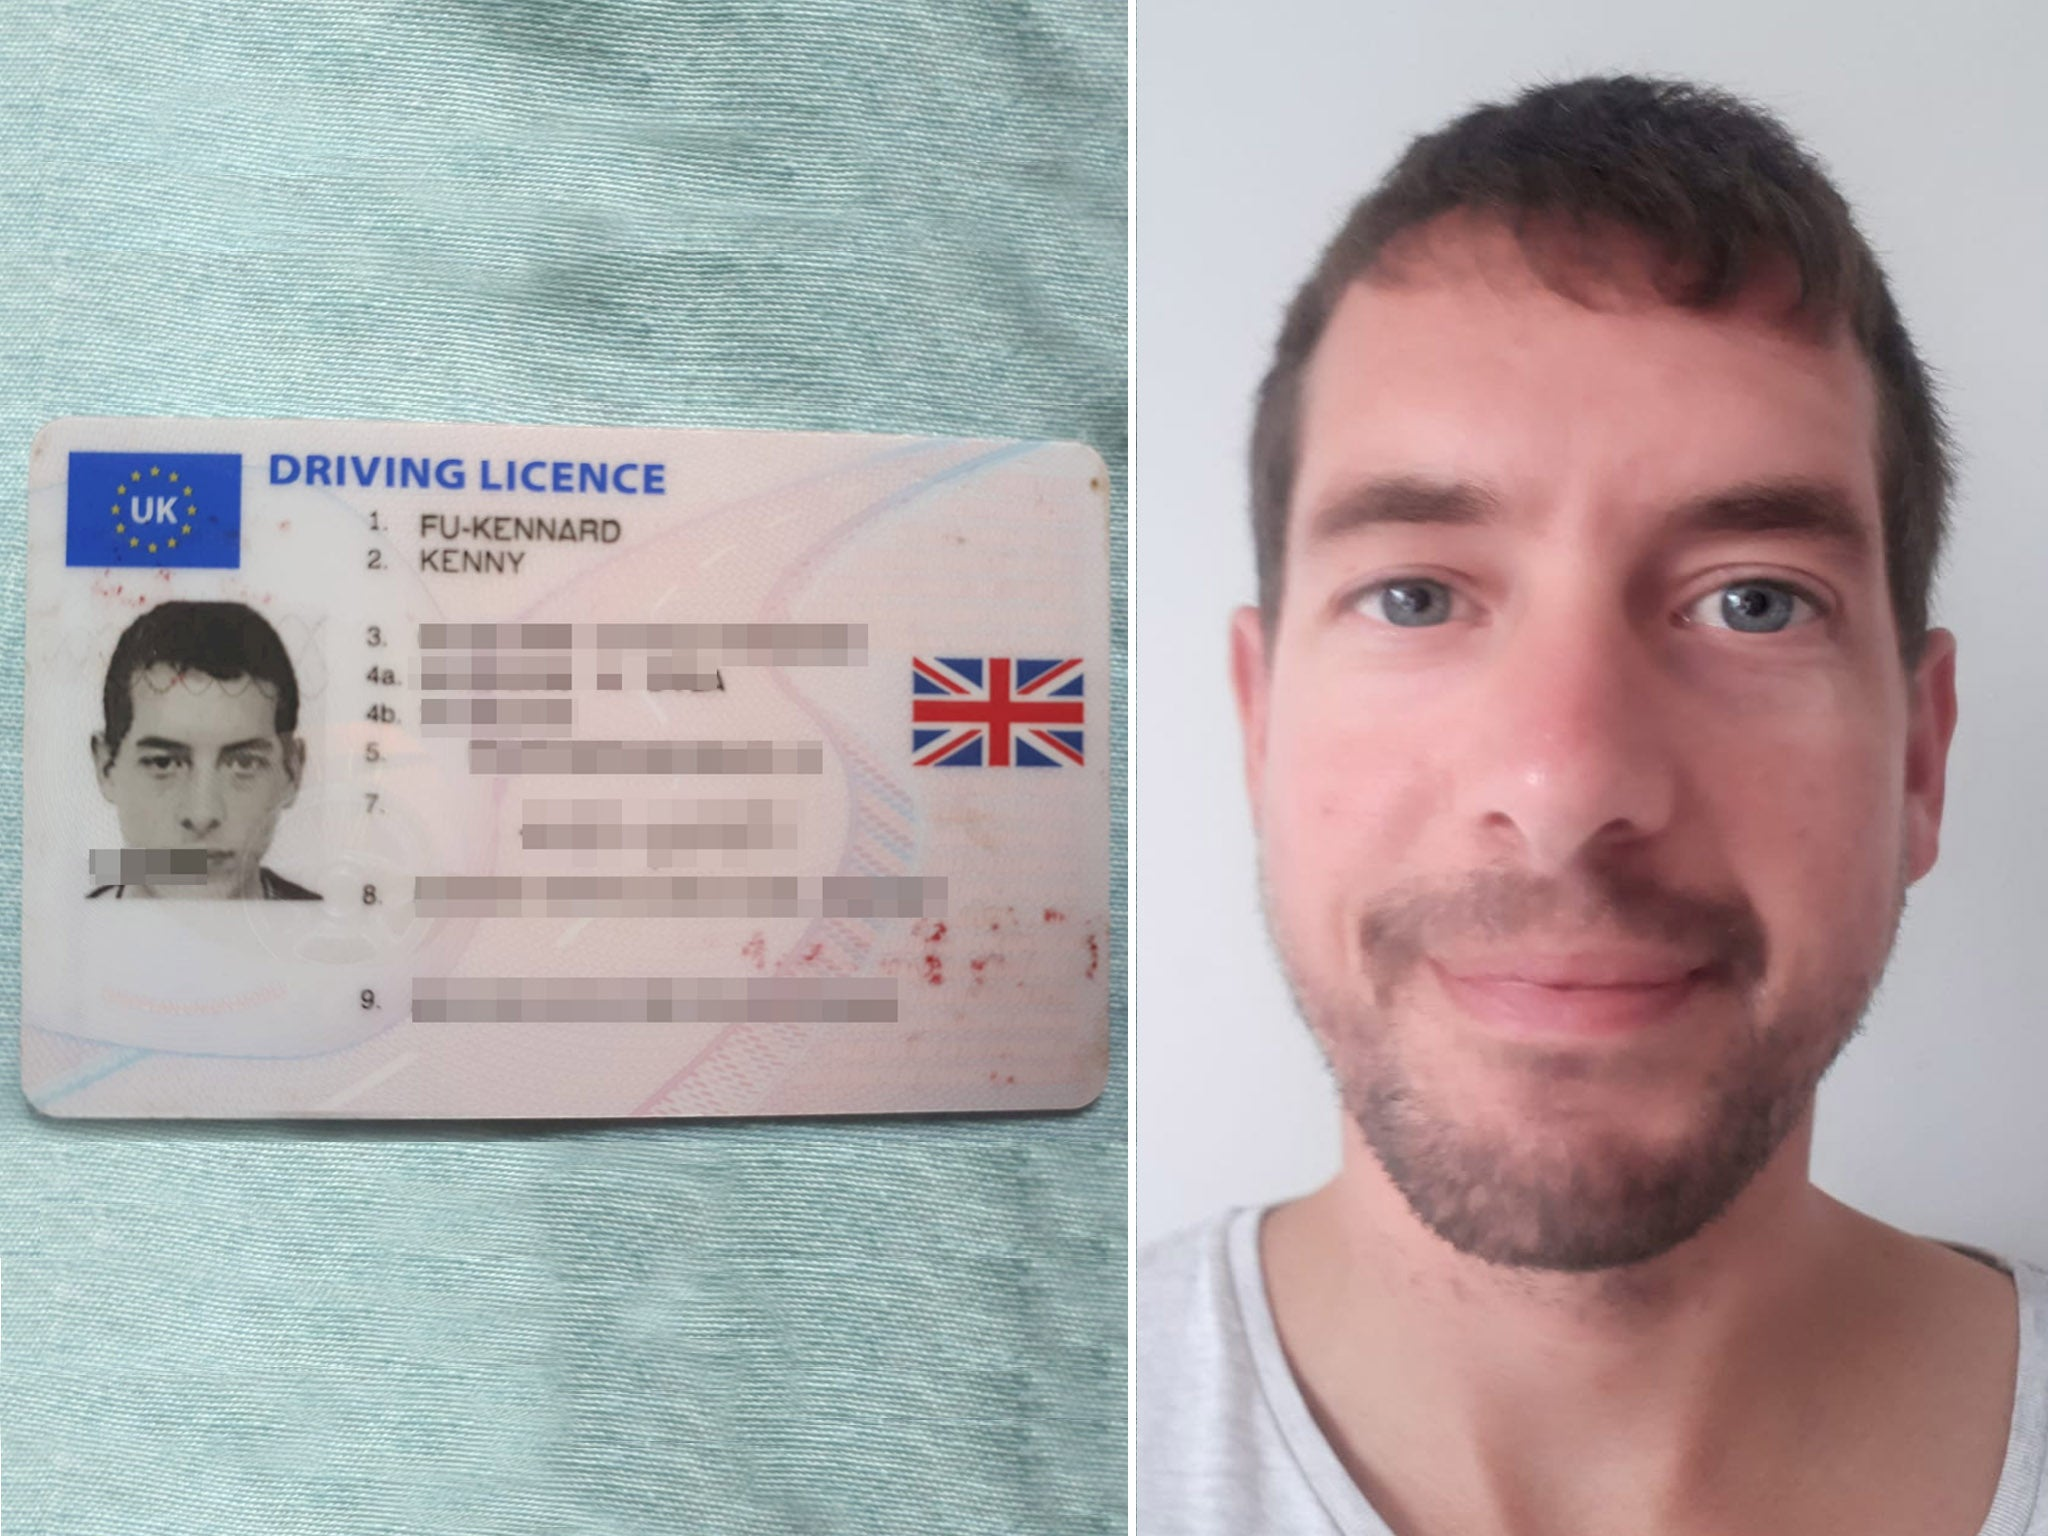 Man who changed surname to Fu-Kennard denied UK passport | The